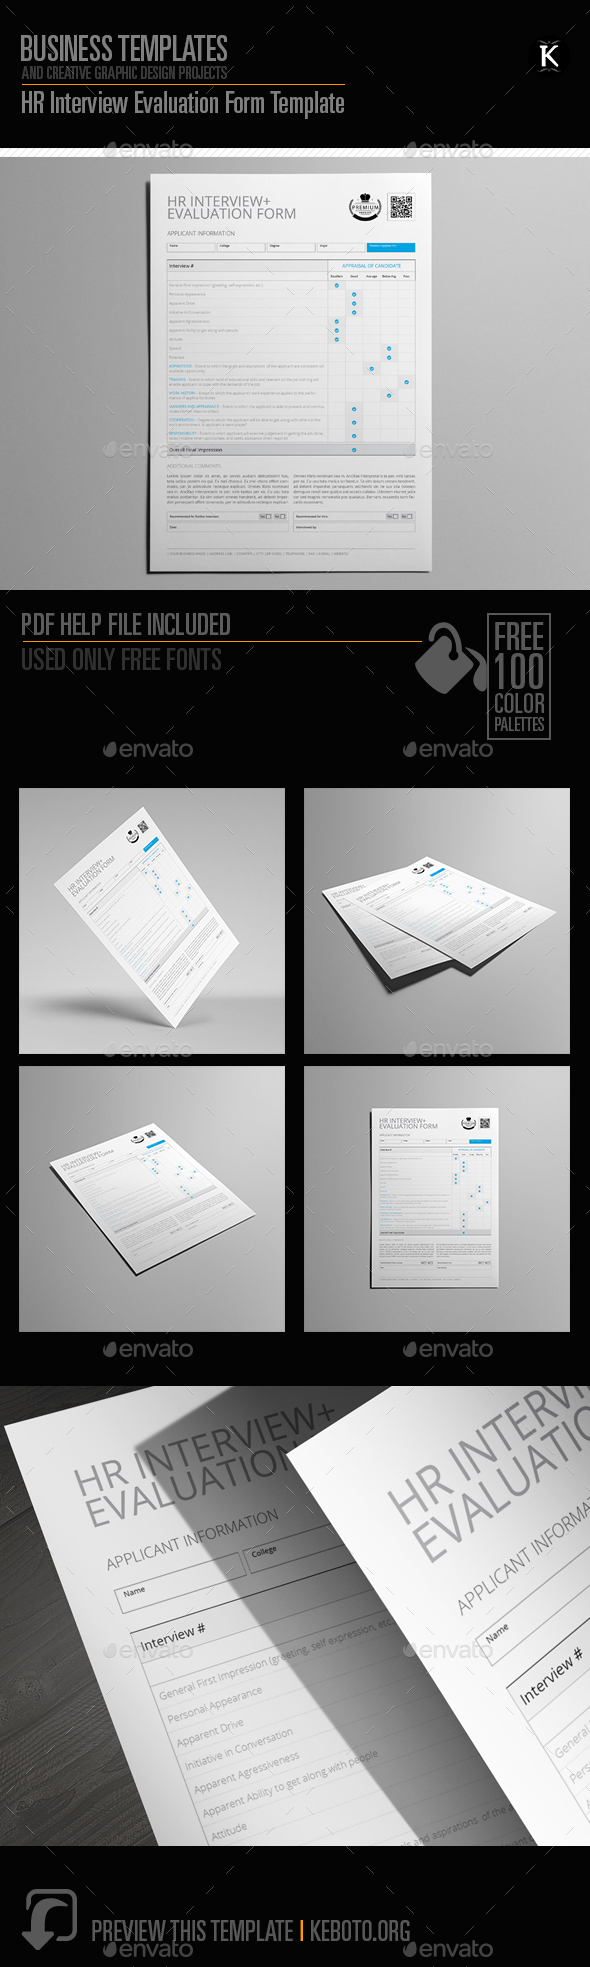 HR Interview Evaluation Form Template by Keboto | GraphicRiver